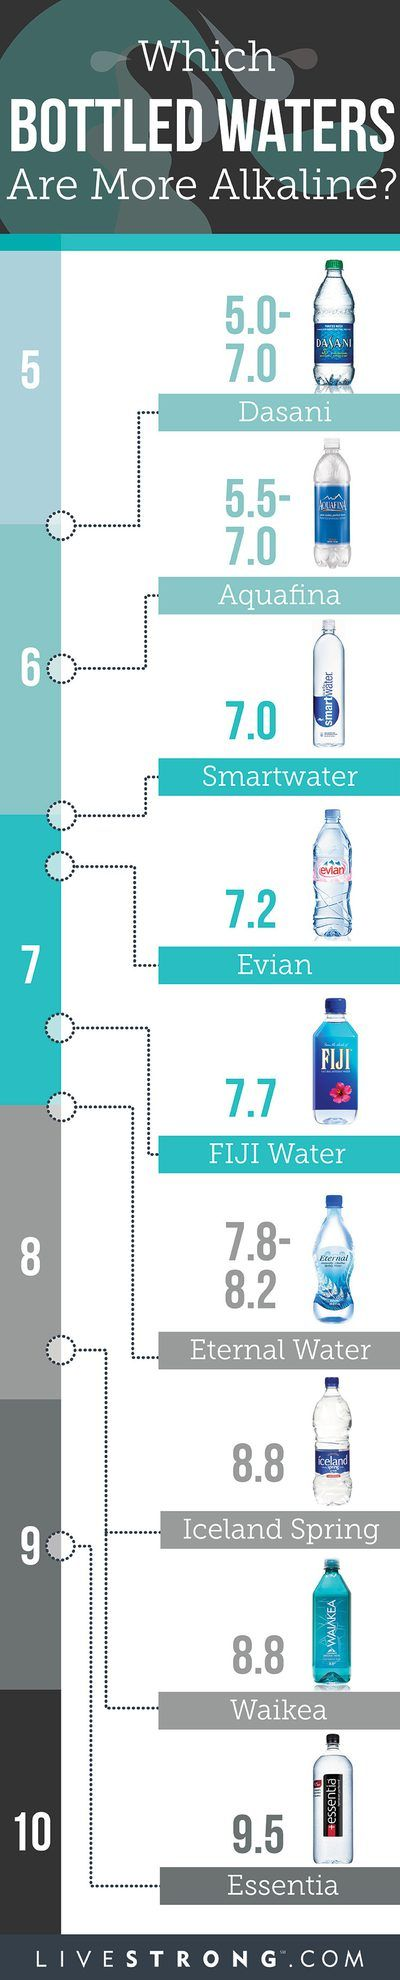 Is Alkaline Water Extra Healthy or a Hoax? Alkaline water is not always good for you, so don't overdo it.